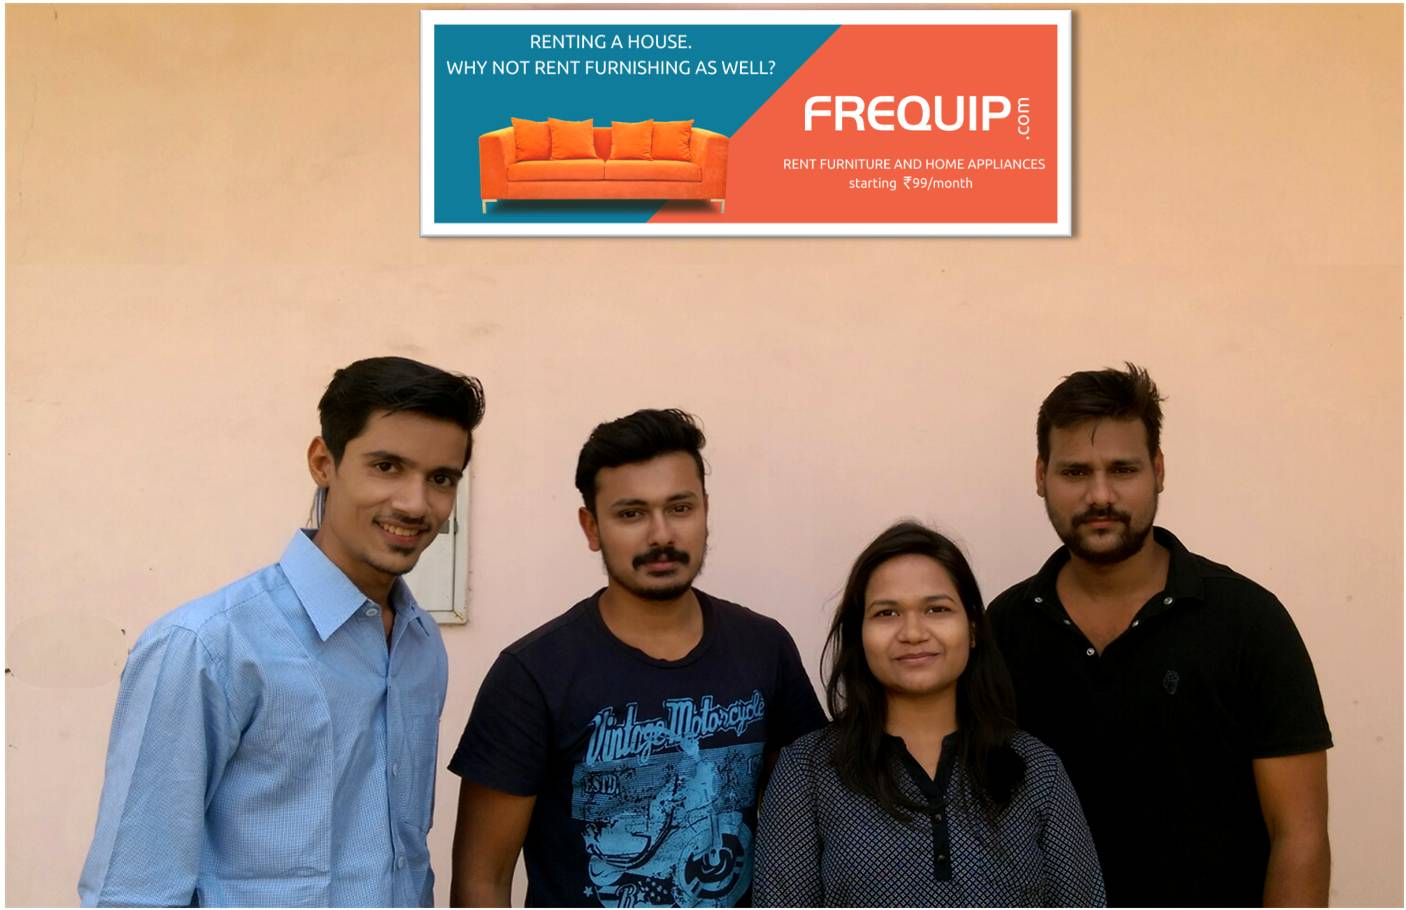 Frequip - Online Furniture and Appliances Rental Platform of India  1 – Frequip